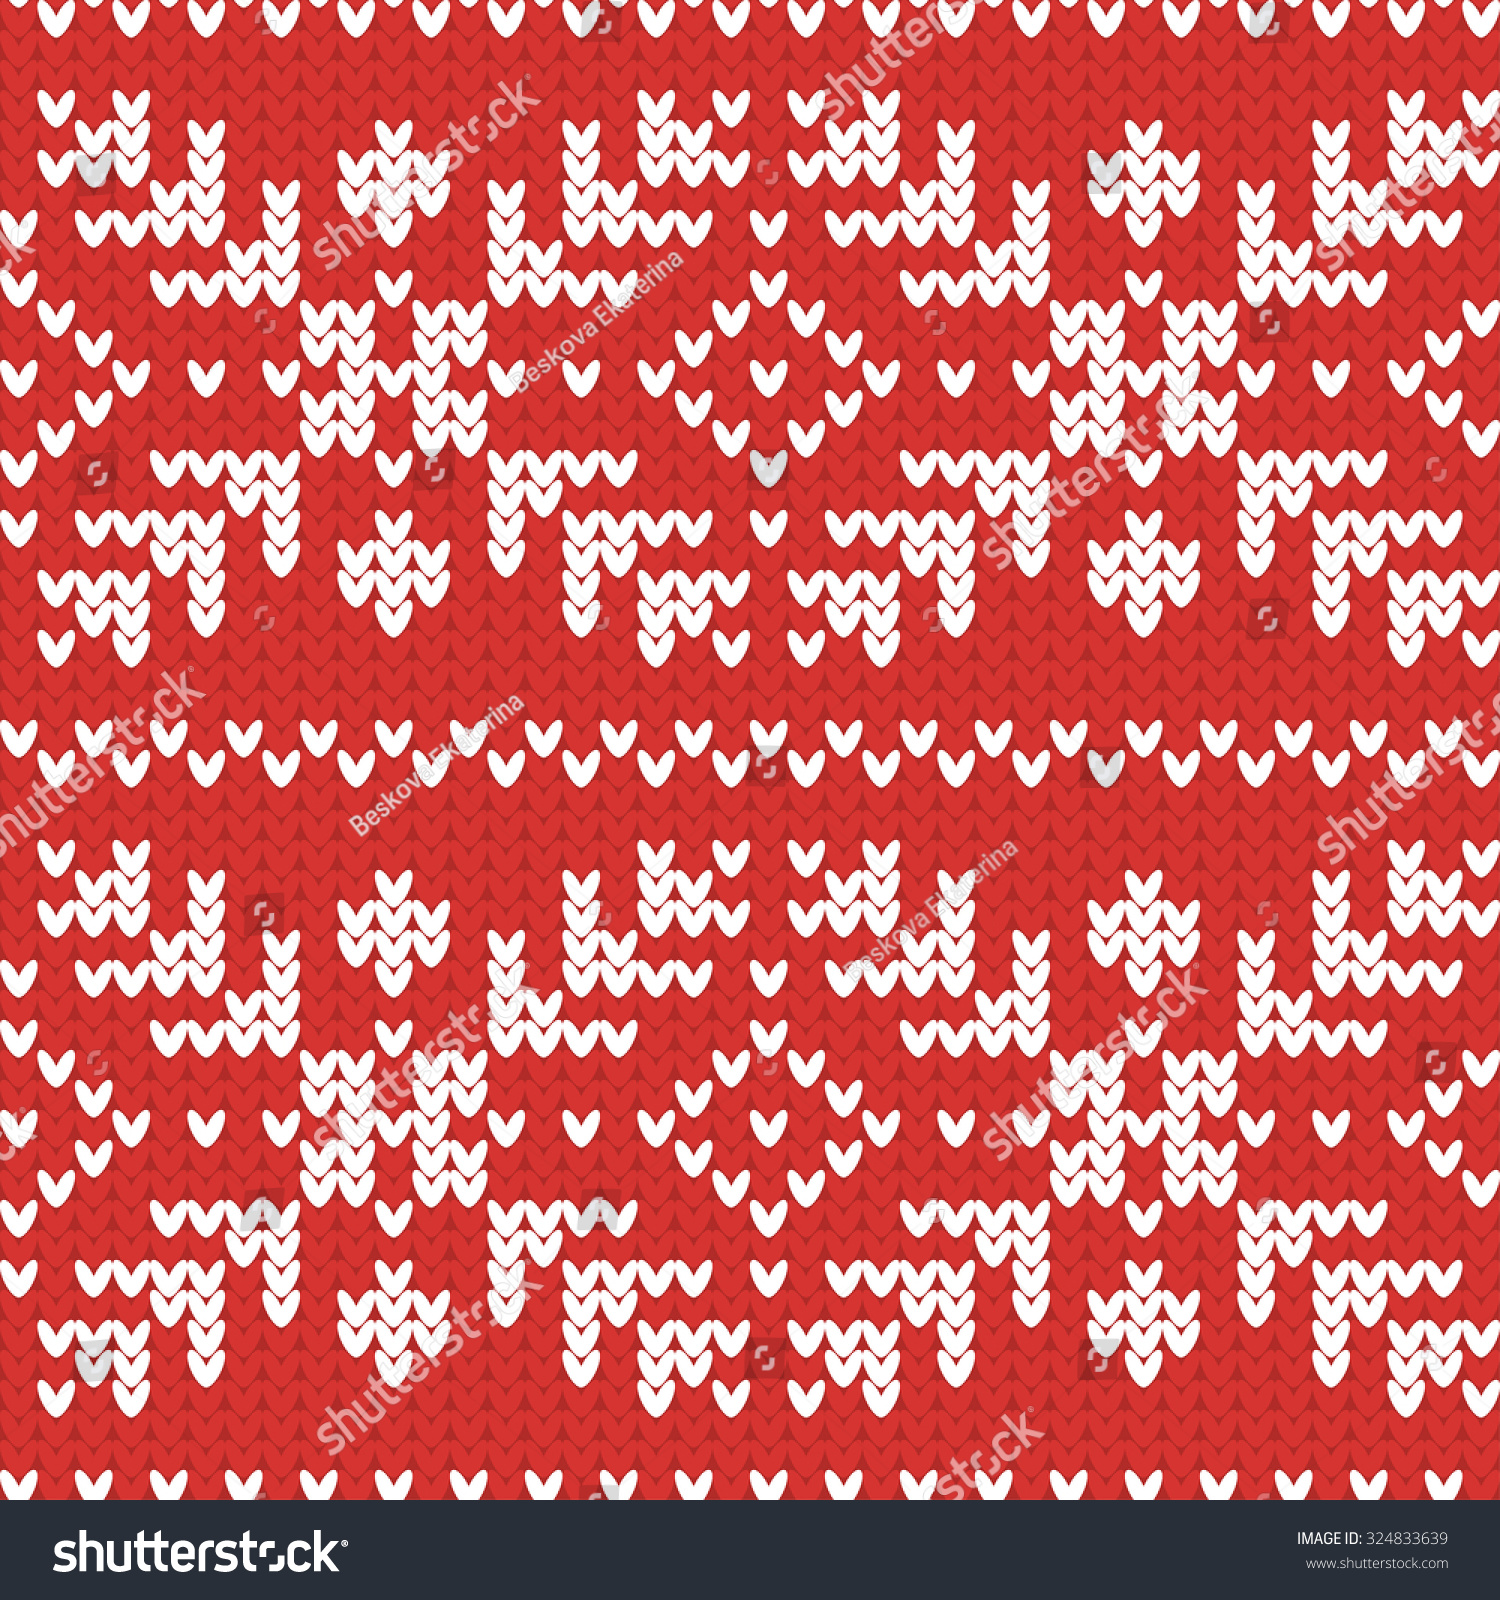 Fancy Knitted Snowflake Patterns Image - Sewing Pattern for Wedding ...